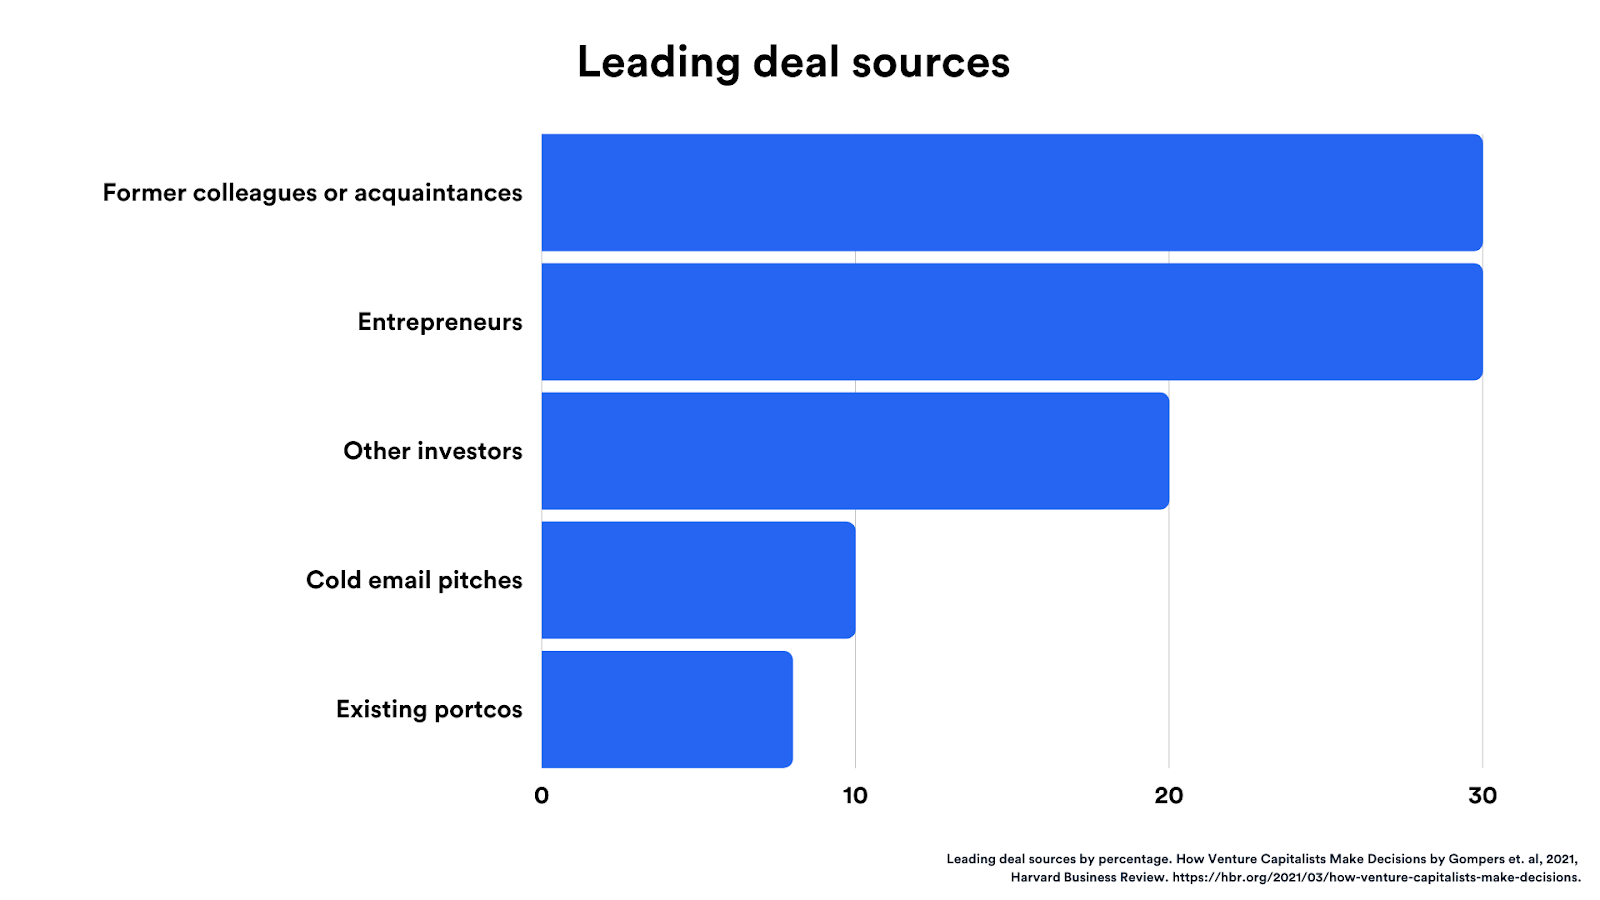 Leading deal sources in venture capital: 30% of deals come from former colleagues or acquaintances, 30% from entrepreneurs, 20% from other investors, 10% from cold email pitches, and 8% from existing portcos.